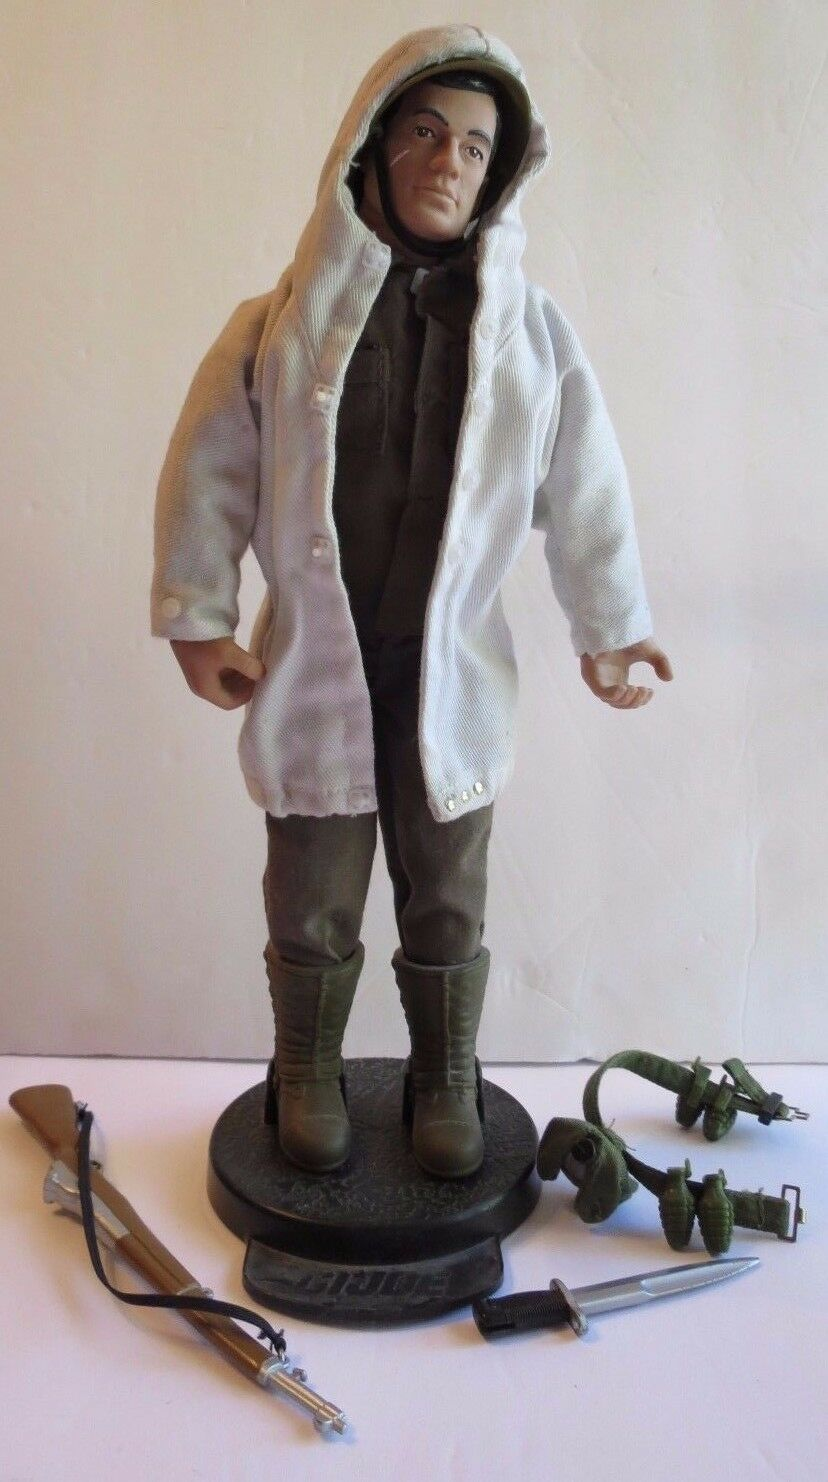 1994 HASBRO GI JOE  ACTION FIGURE DOLL With CLOTHES, STAND & ACCESSORIES  11